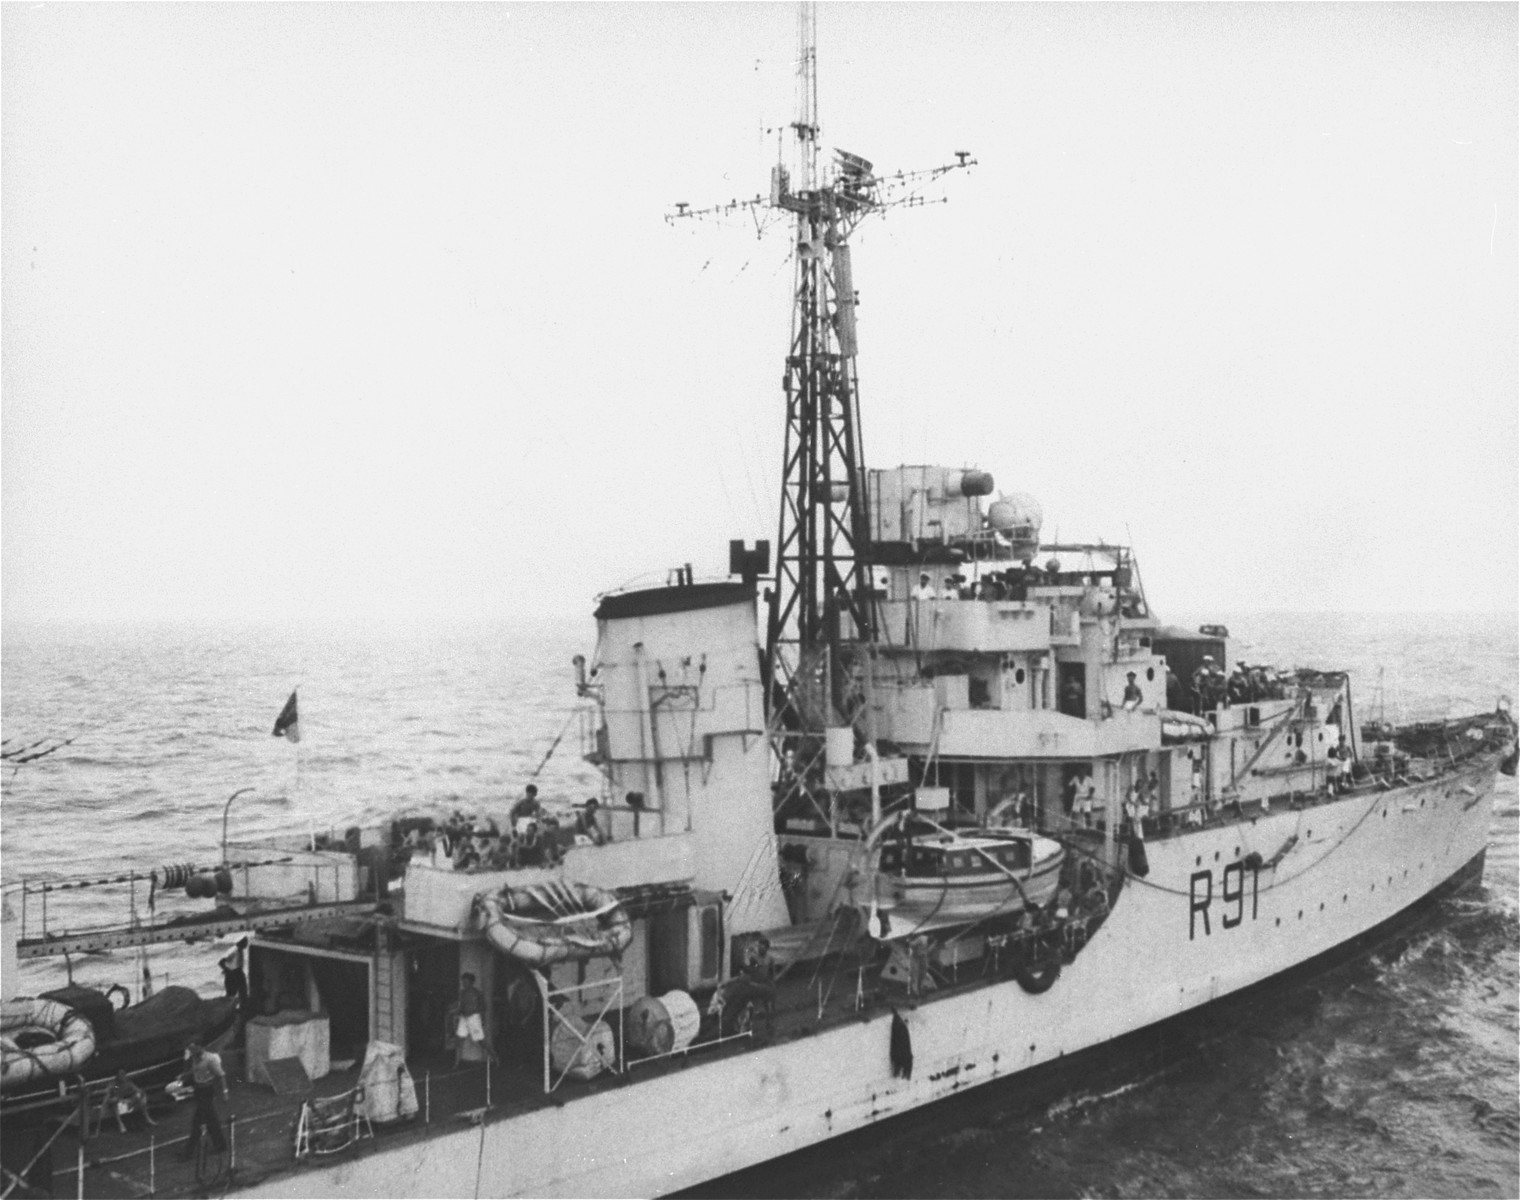 The British destroyer, H.M.S. Childers (R-91), closes in on the Exodus 1947 off the shore of Palestine.